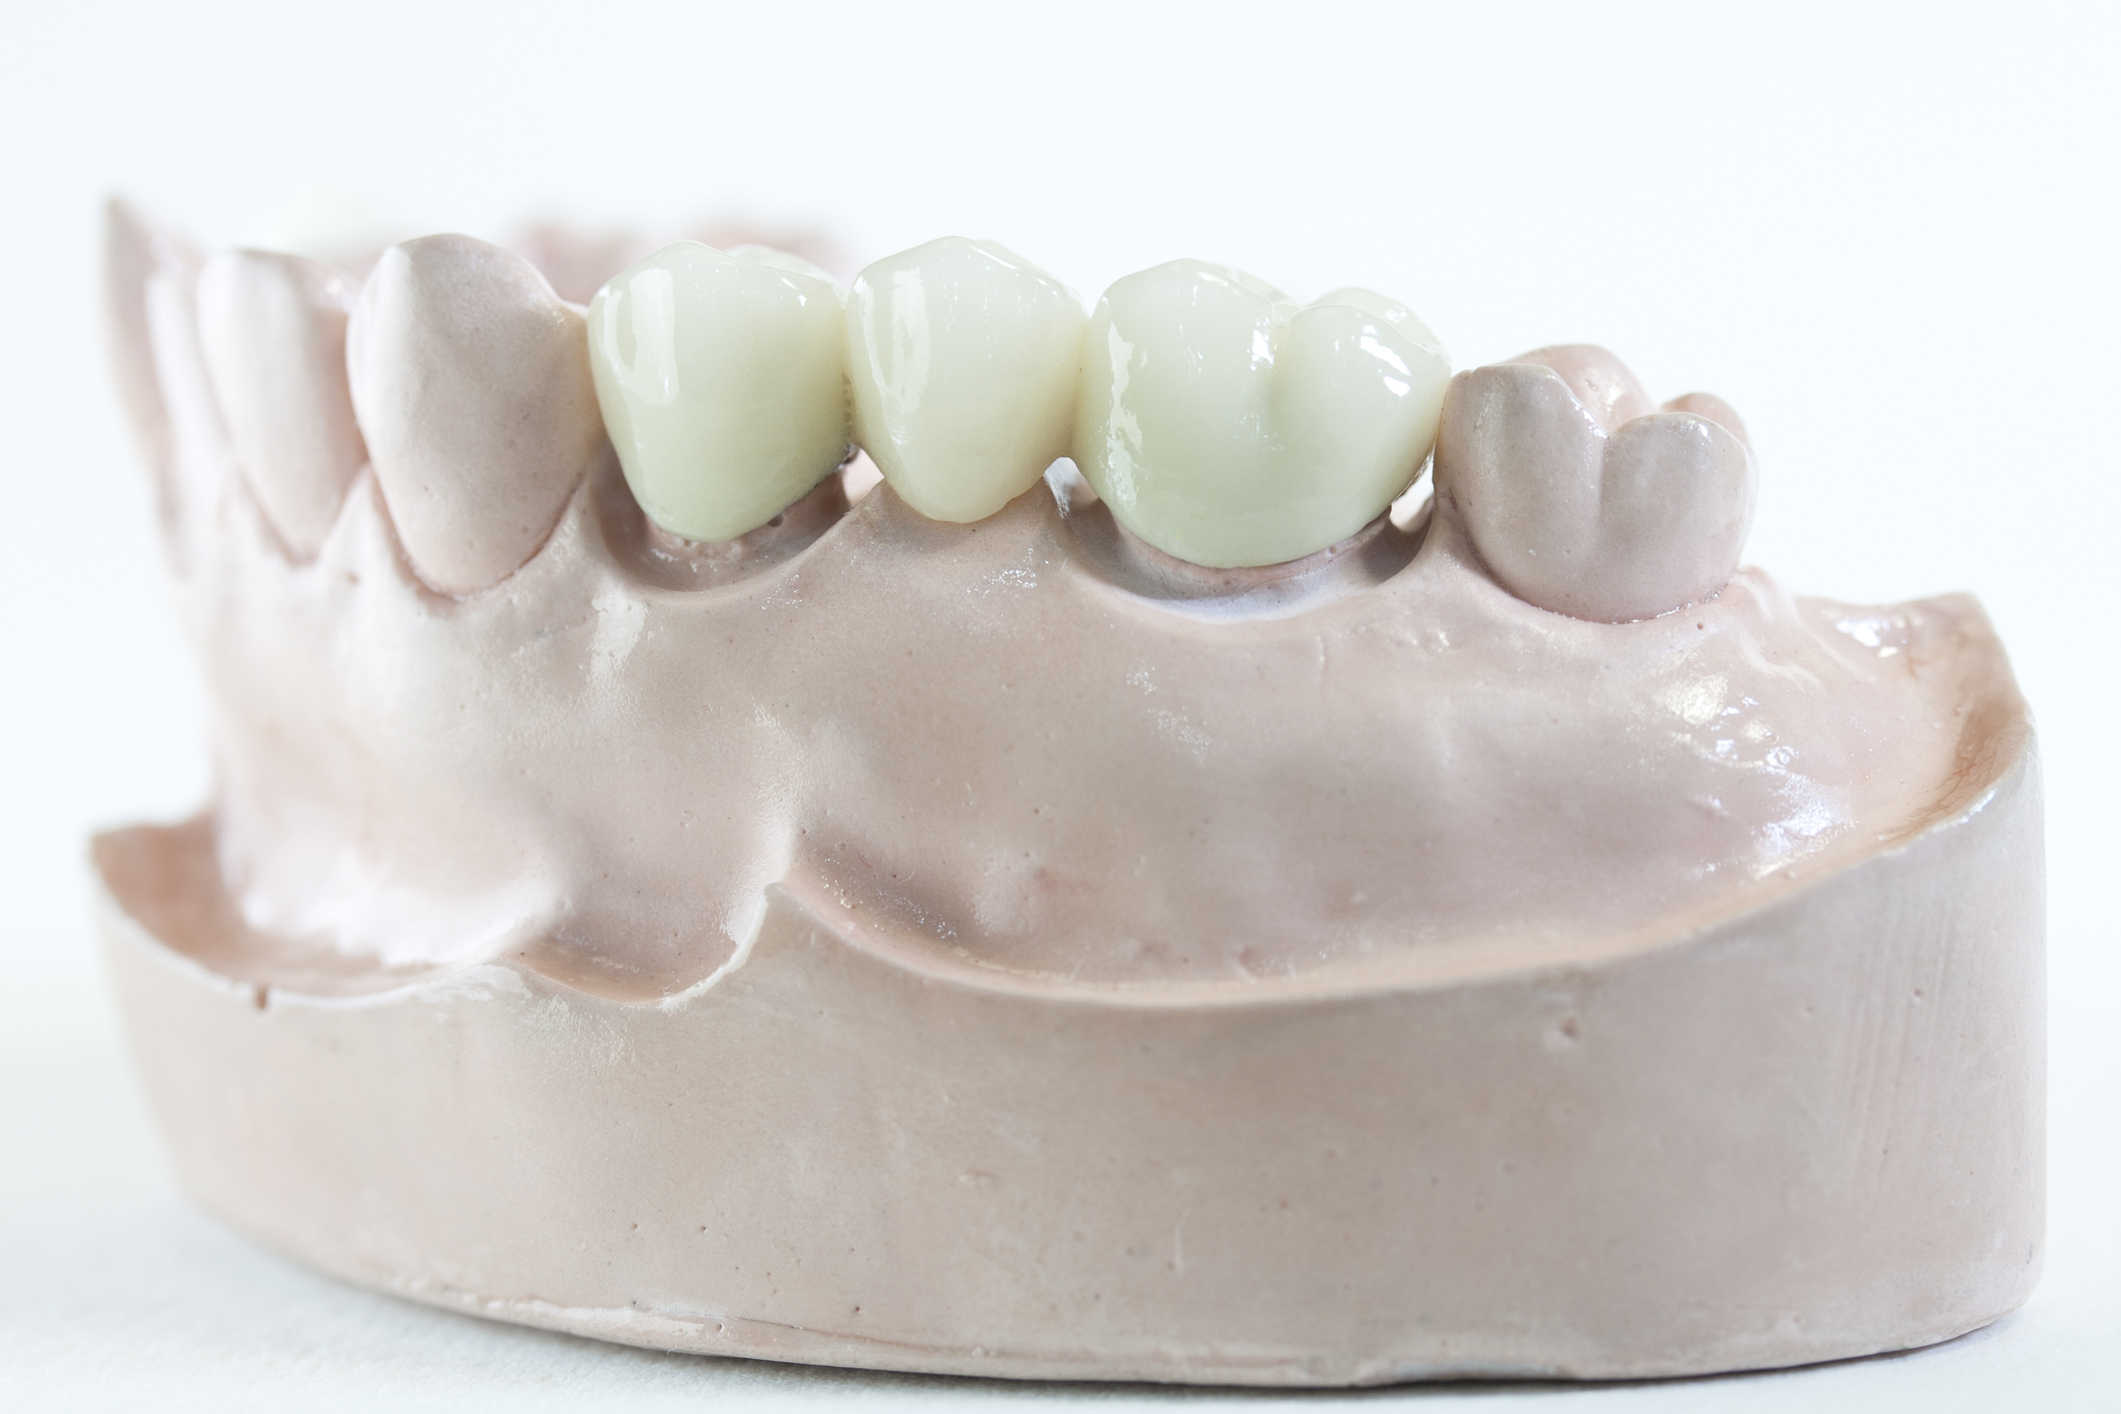 Dental Bridge- 3 units - 2 teeth replace 1 missing in the middle.